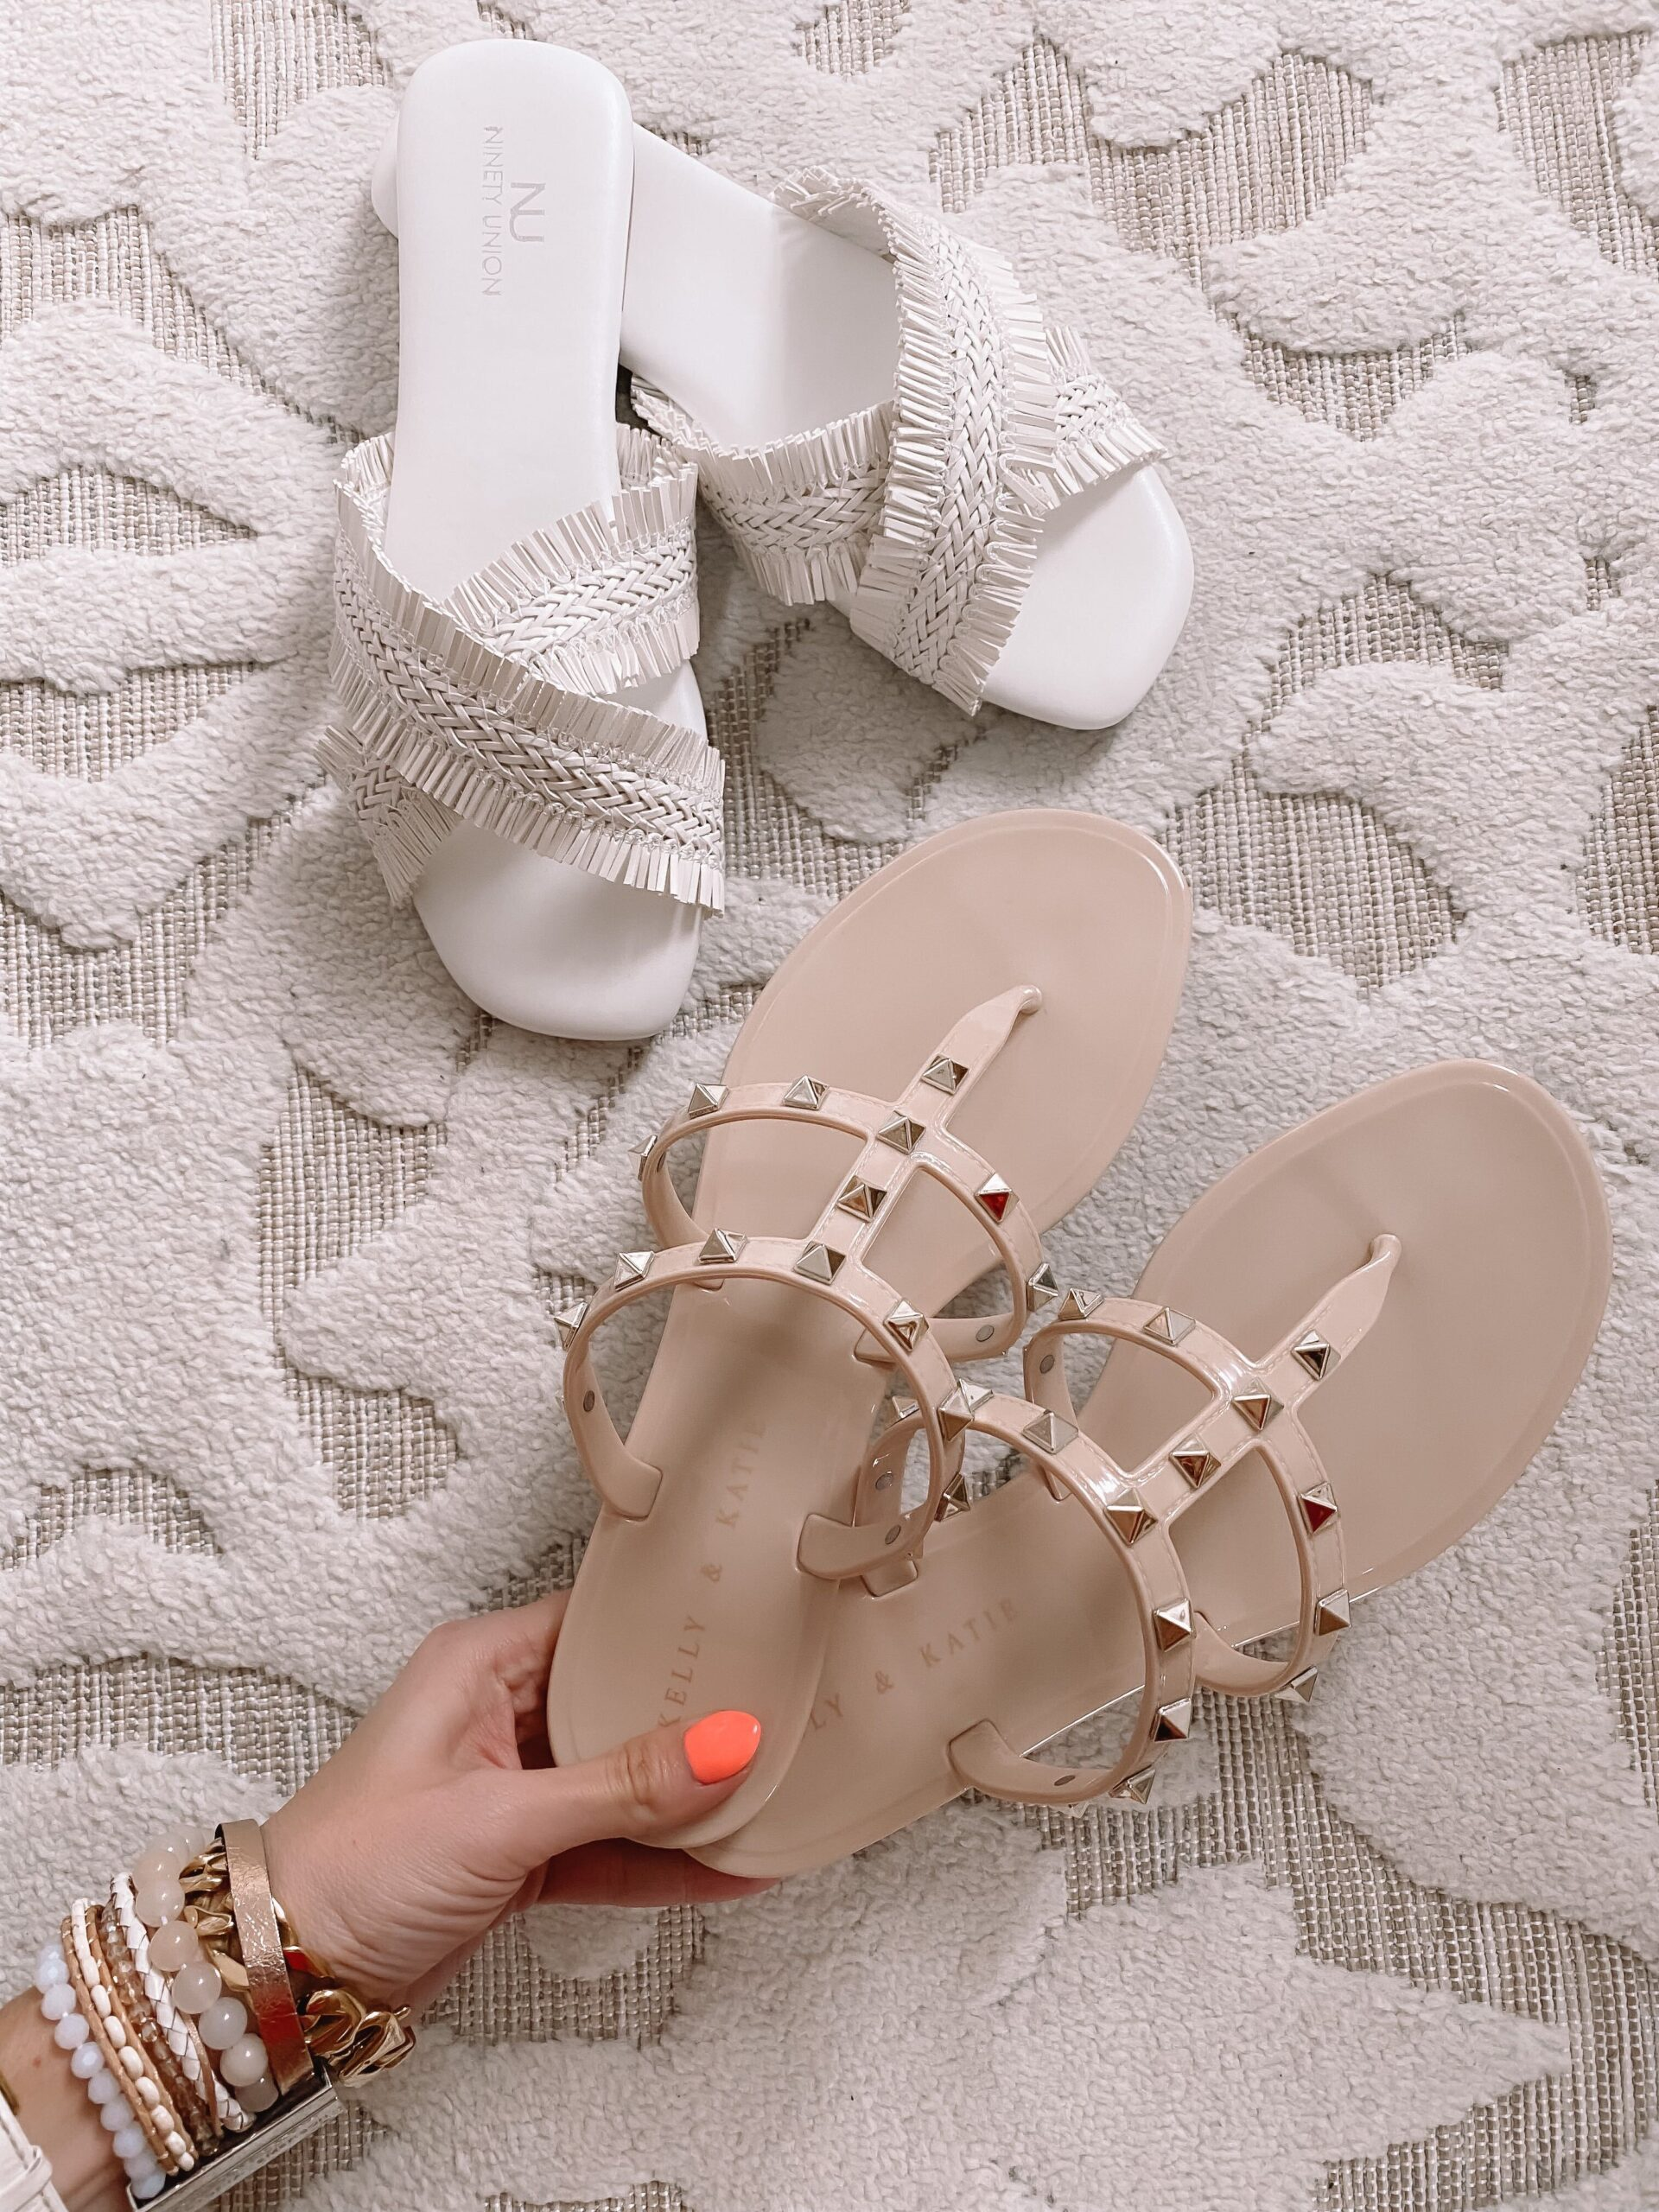 dsw jelly sandals and white sandals